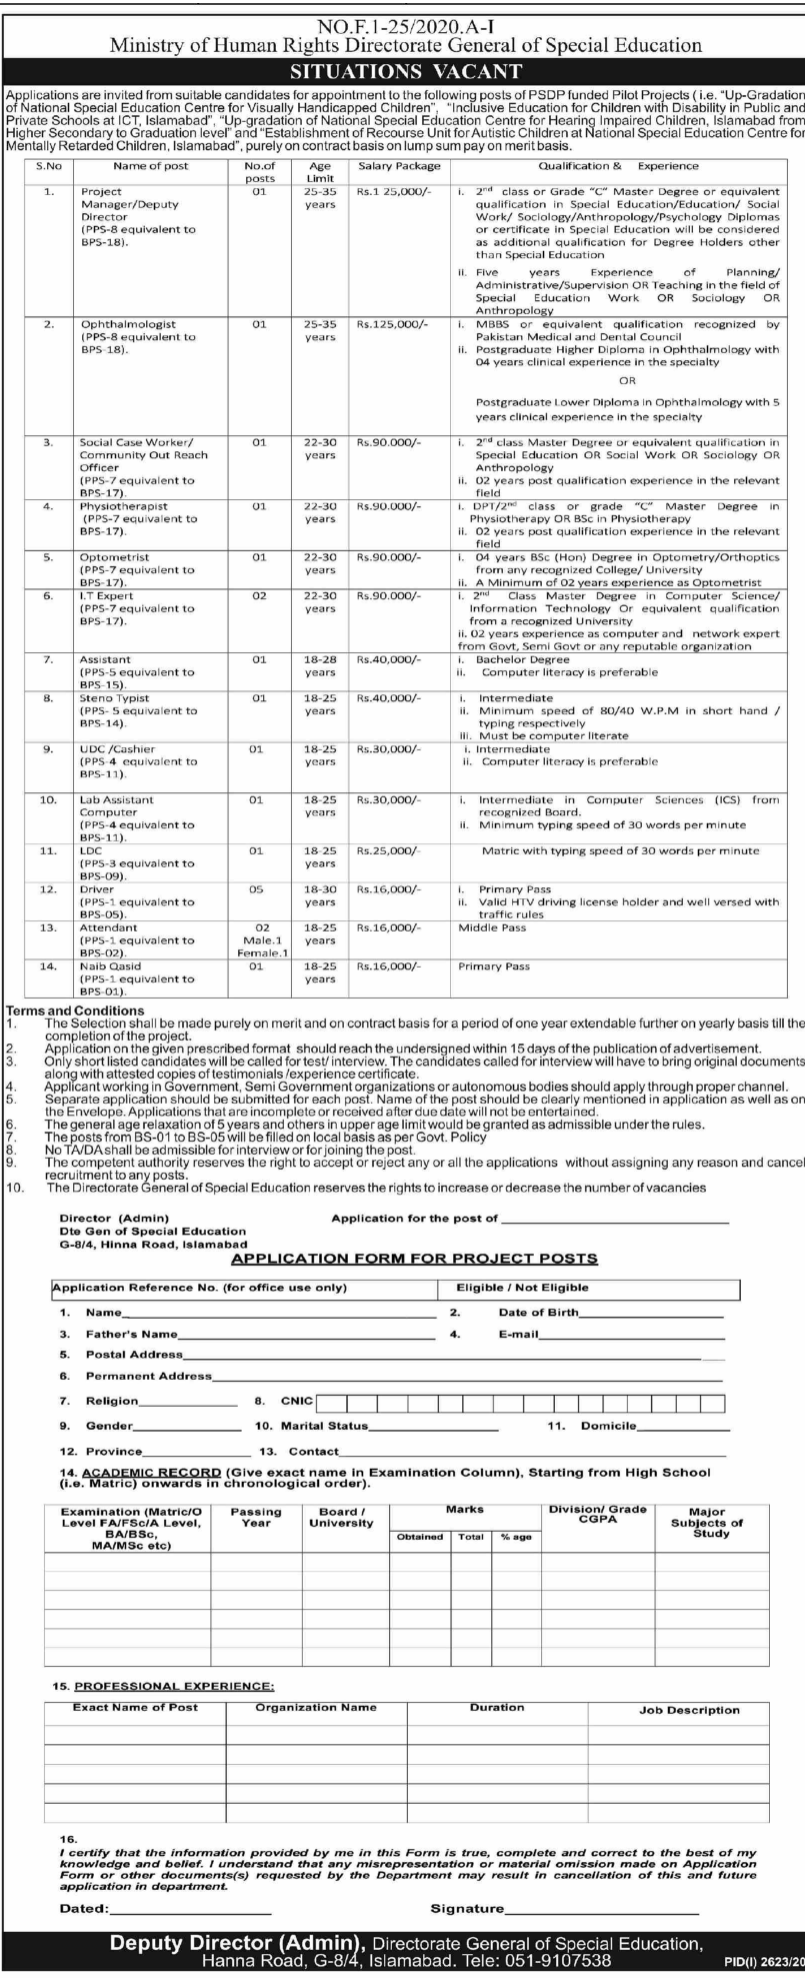 Master in Computer Science Pass jobs For IT Expert in Ministry of Human Rights Directorate General of Special Education in Islamabad for Pakistan candidates -2020